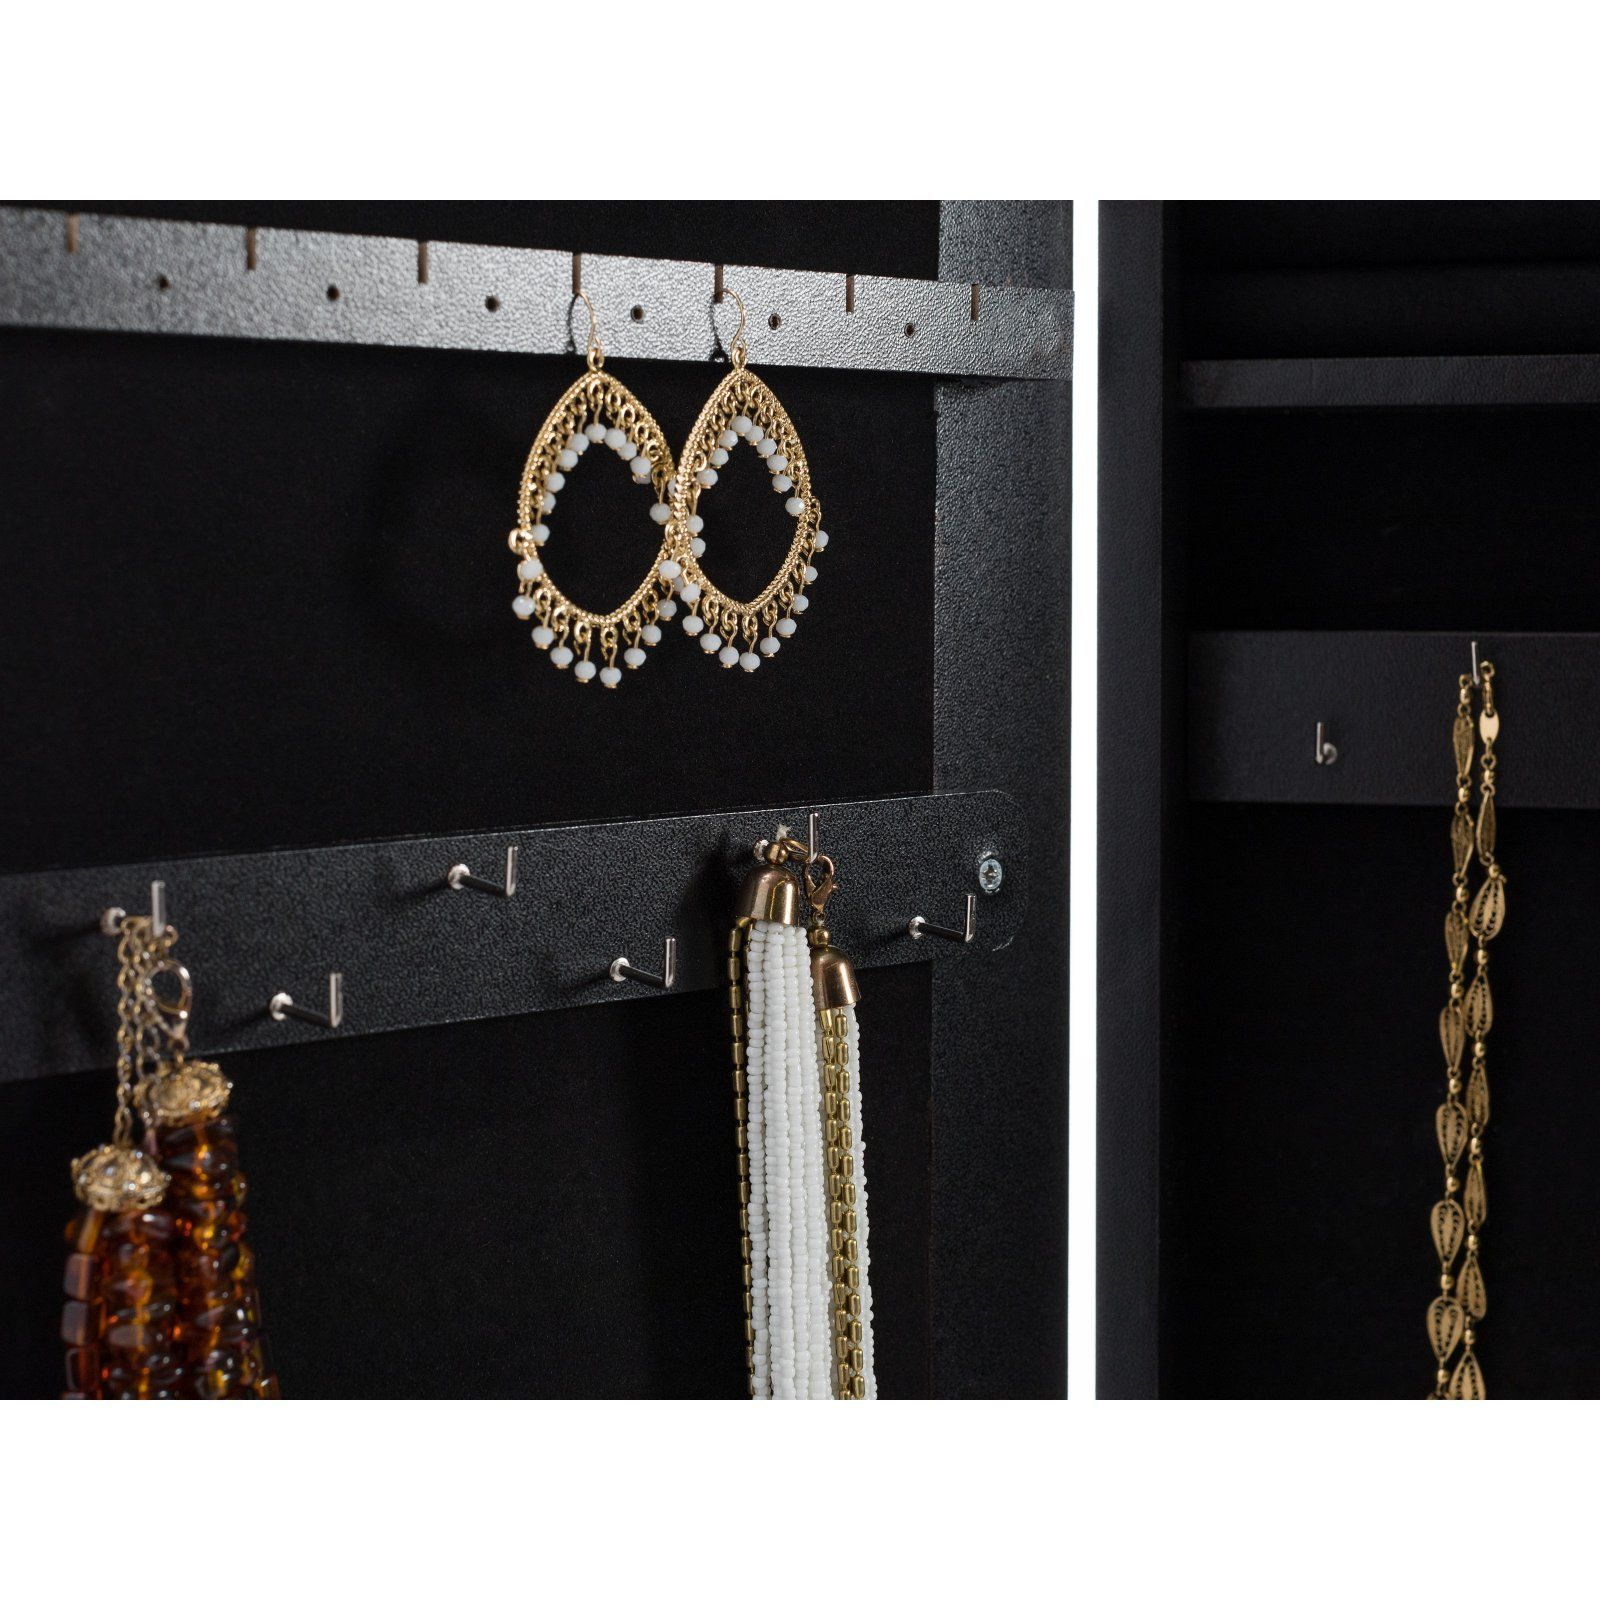 39+ Mainstays mirrored cheval jewelry armoire white info